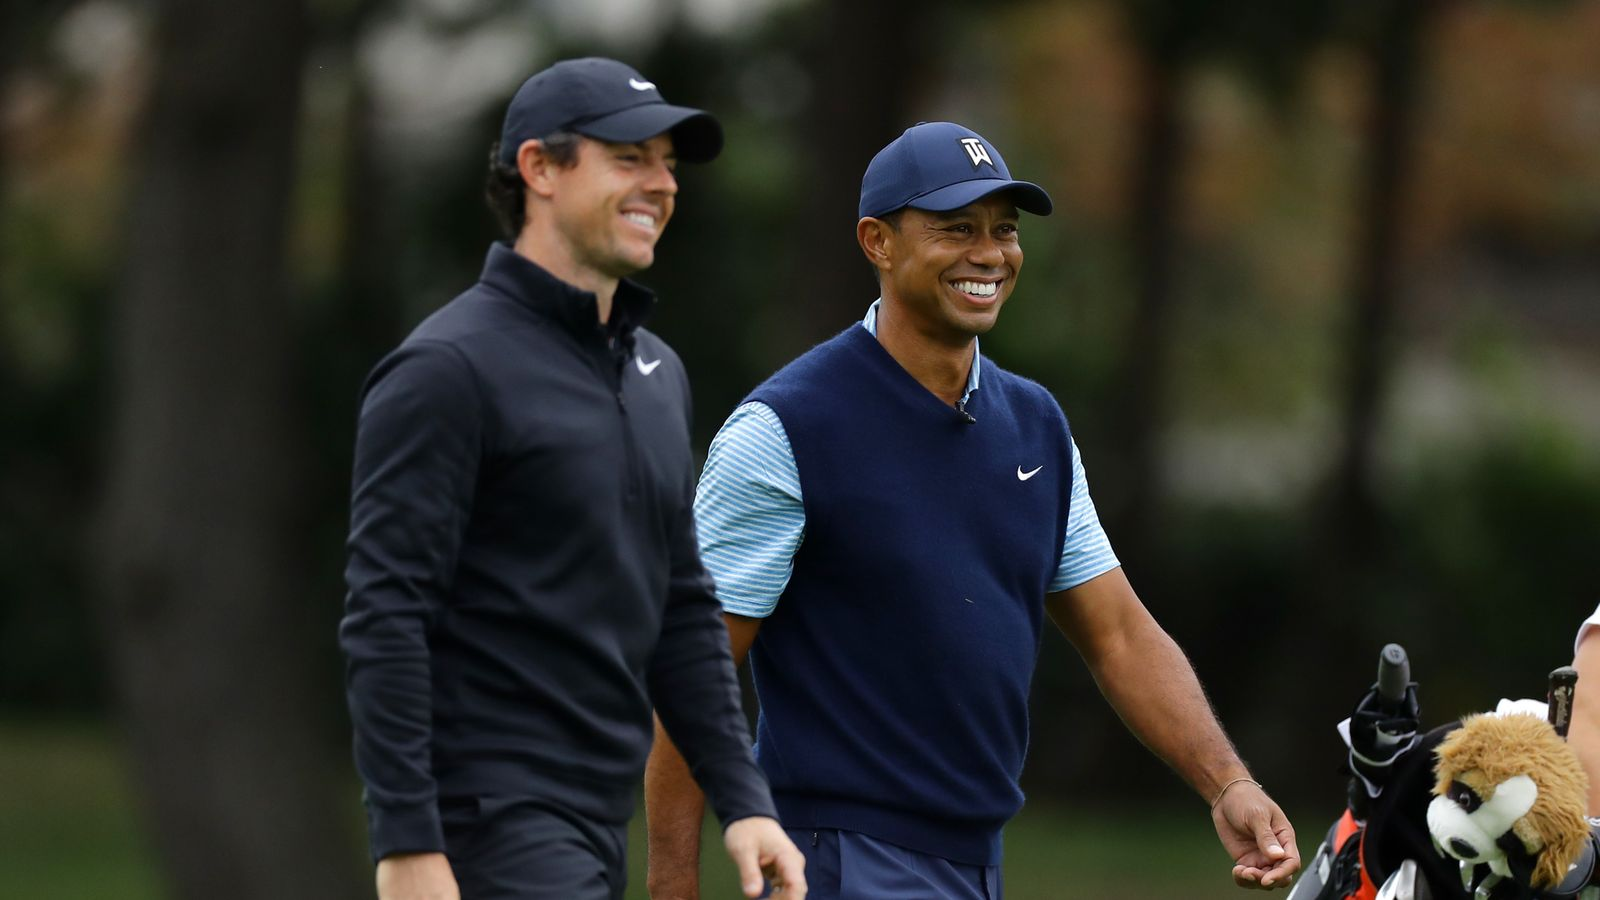 The Memorial: Tiger Woods grouped with Rory McIlroy, Brooks Koepka | Golf News